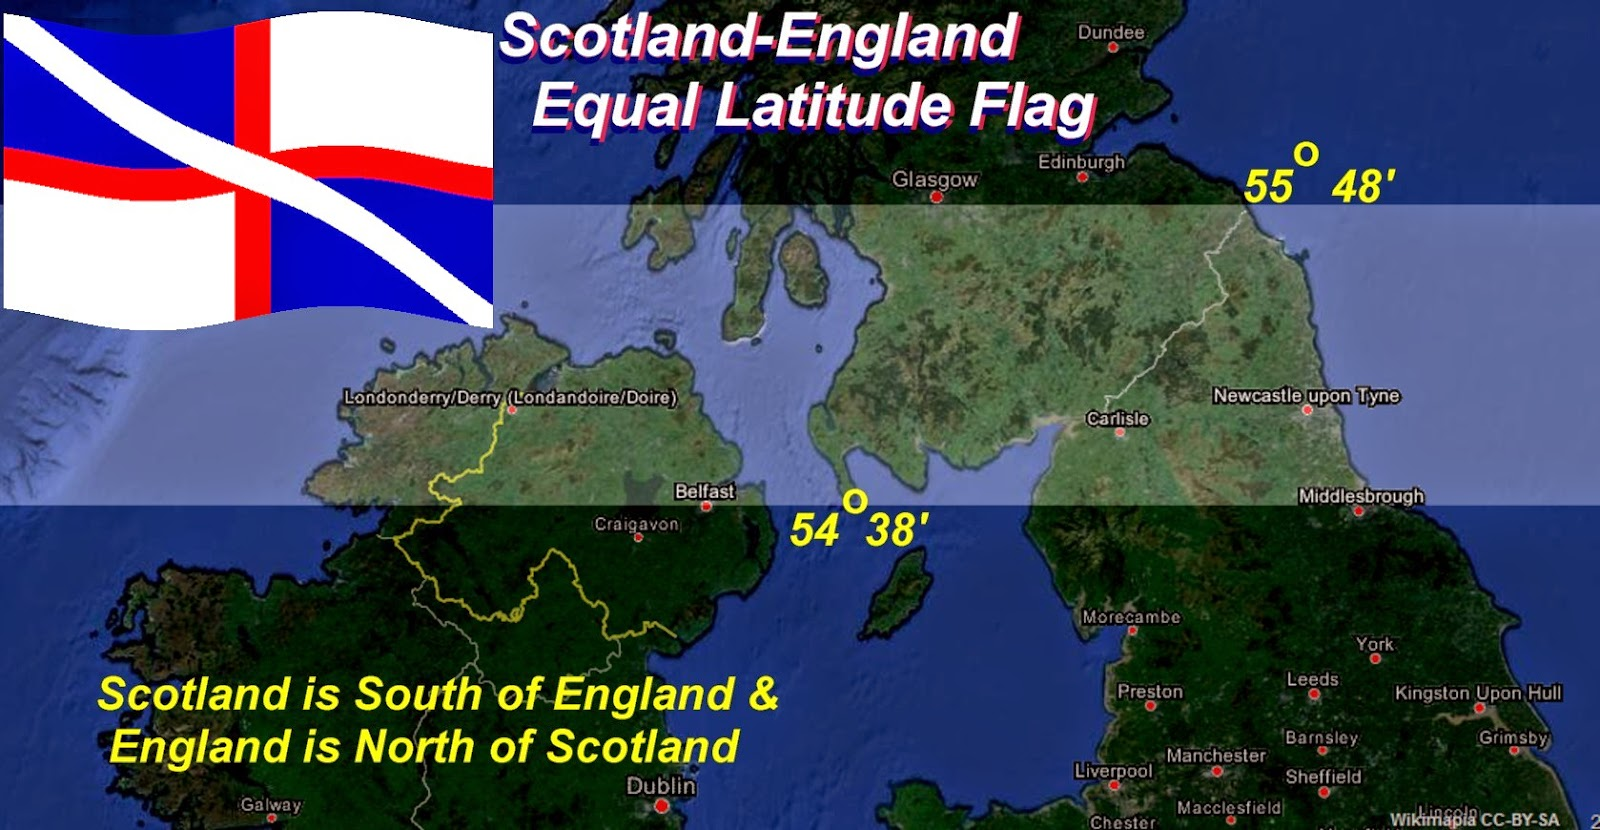 the voice of vexillology flags u0026 heraldry scotland england equal